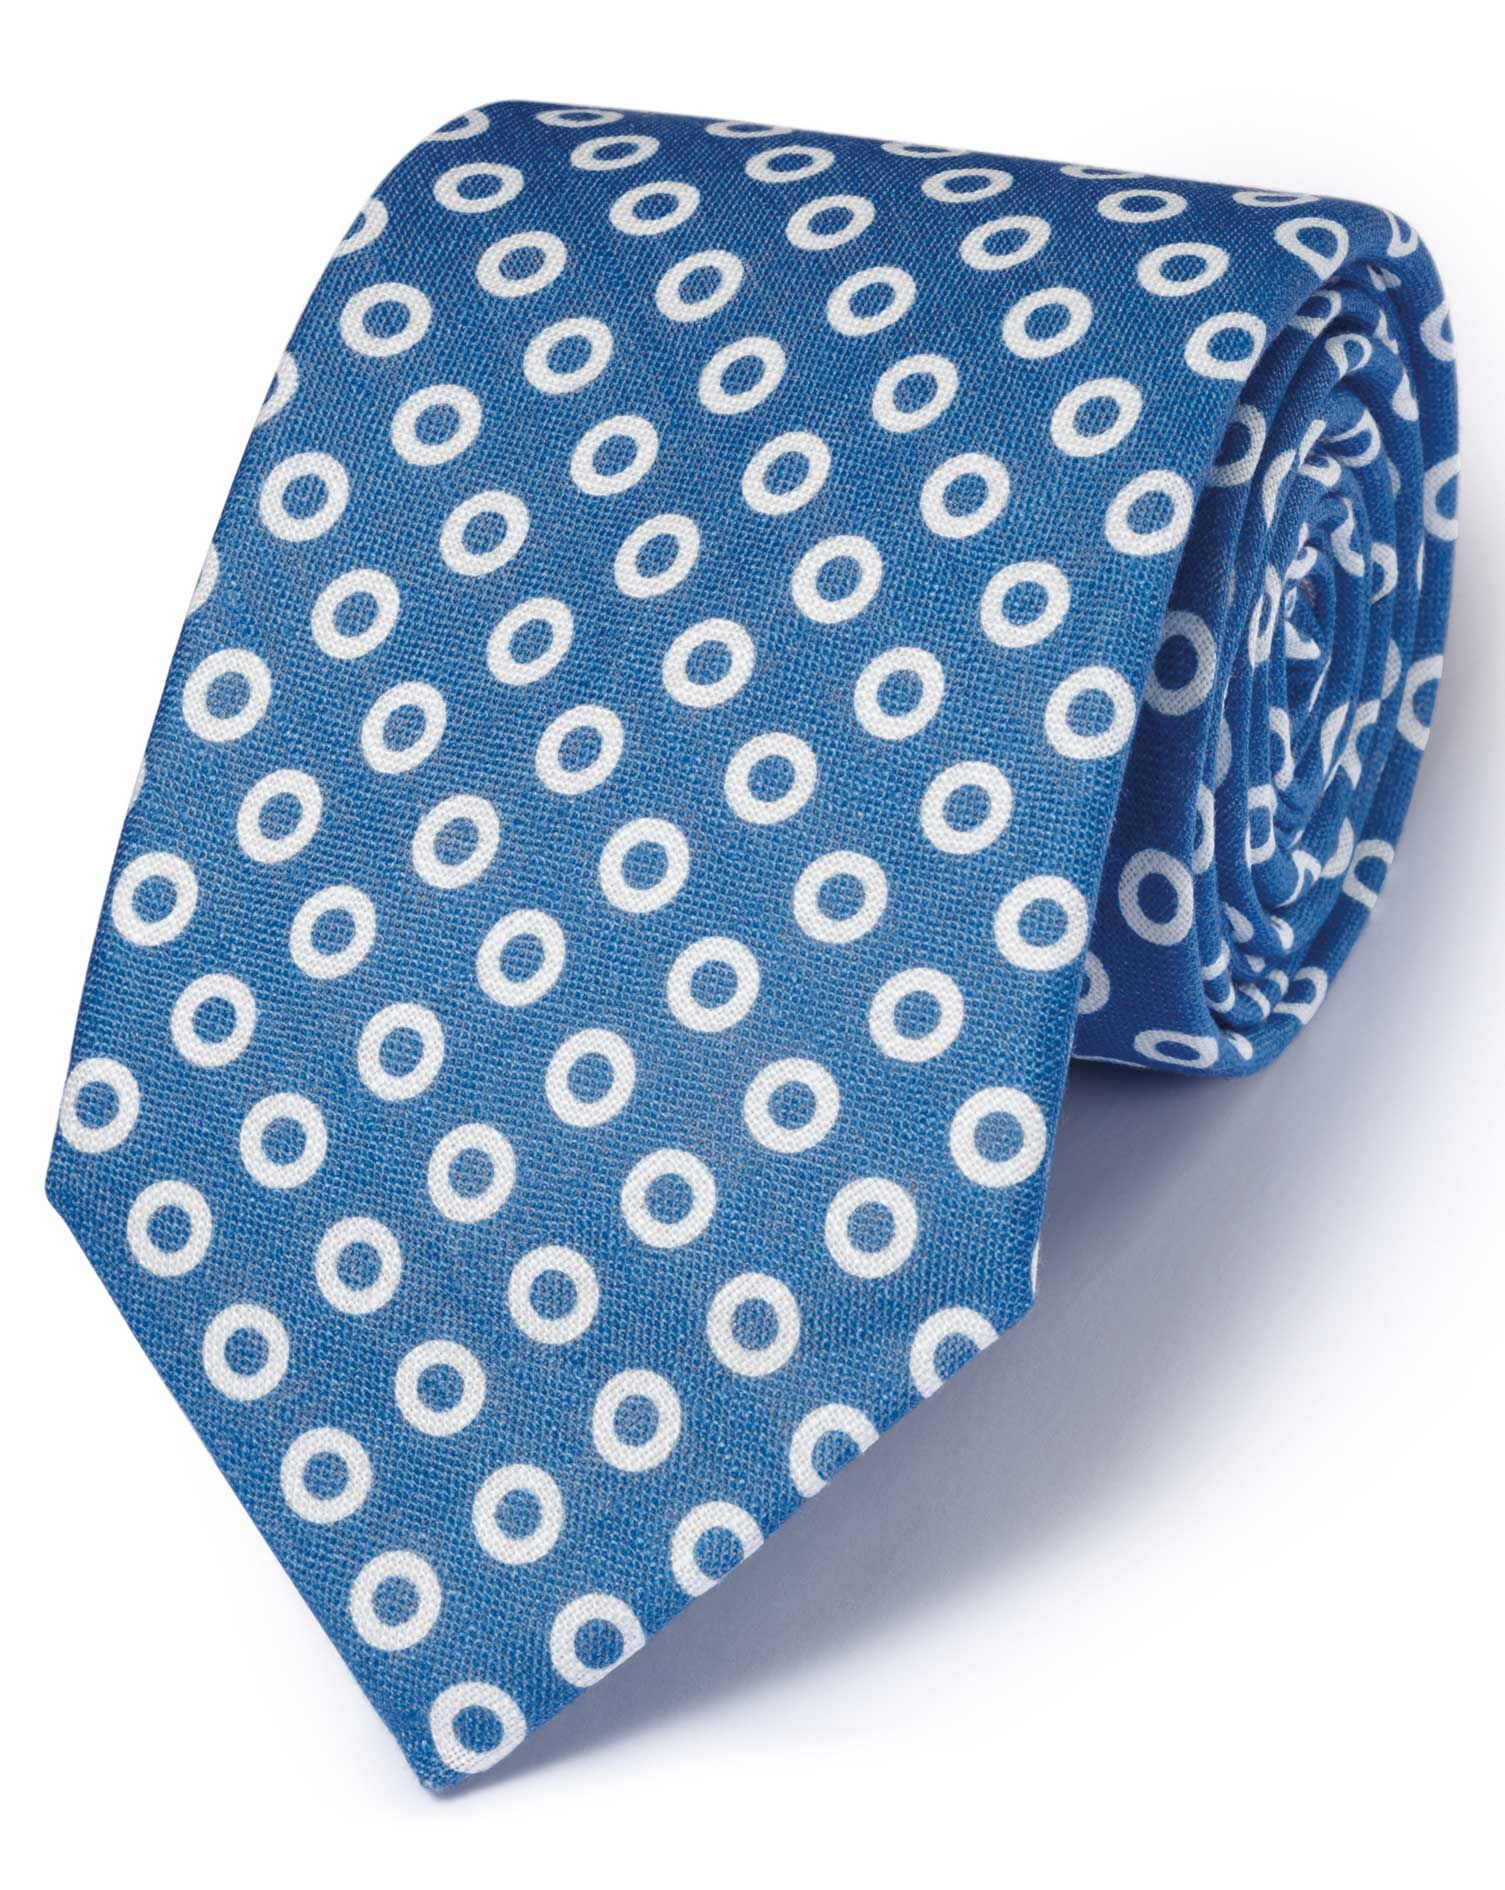 Blue Linen English Luxury Spot Tie Size OSFA by Charles Tyrwhitt